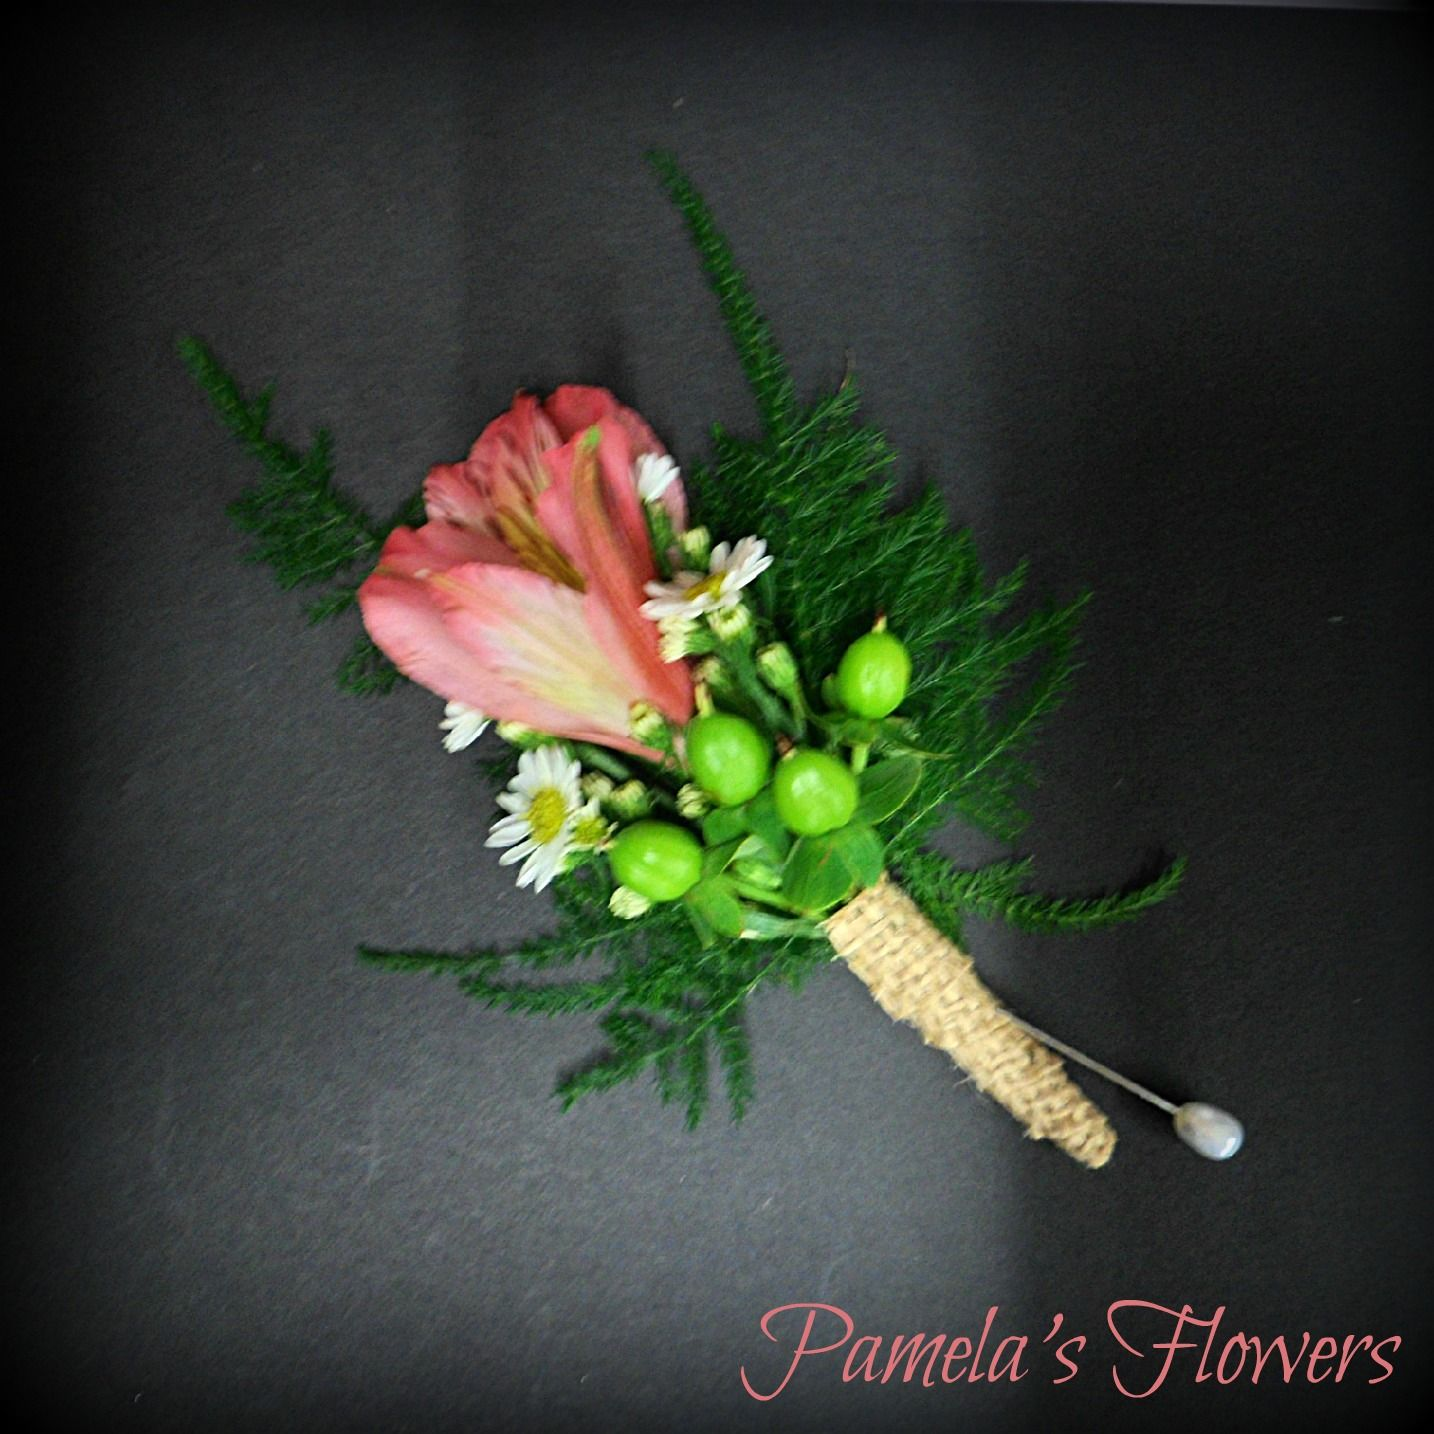 Father S Boutonniere Designed By Pamela S Flowers A Coral Alstroemeria Blossom Accented With Wh Wedding Party Flowers Flower Delivery Service Flower Delivery